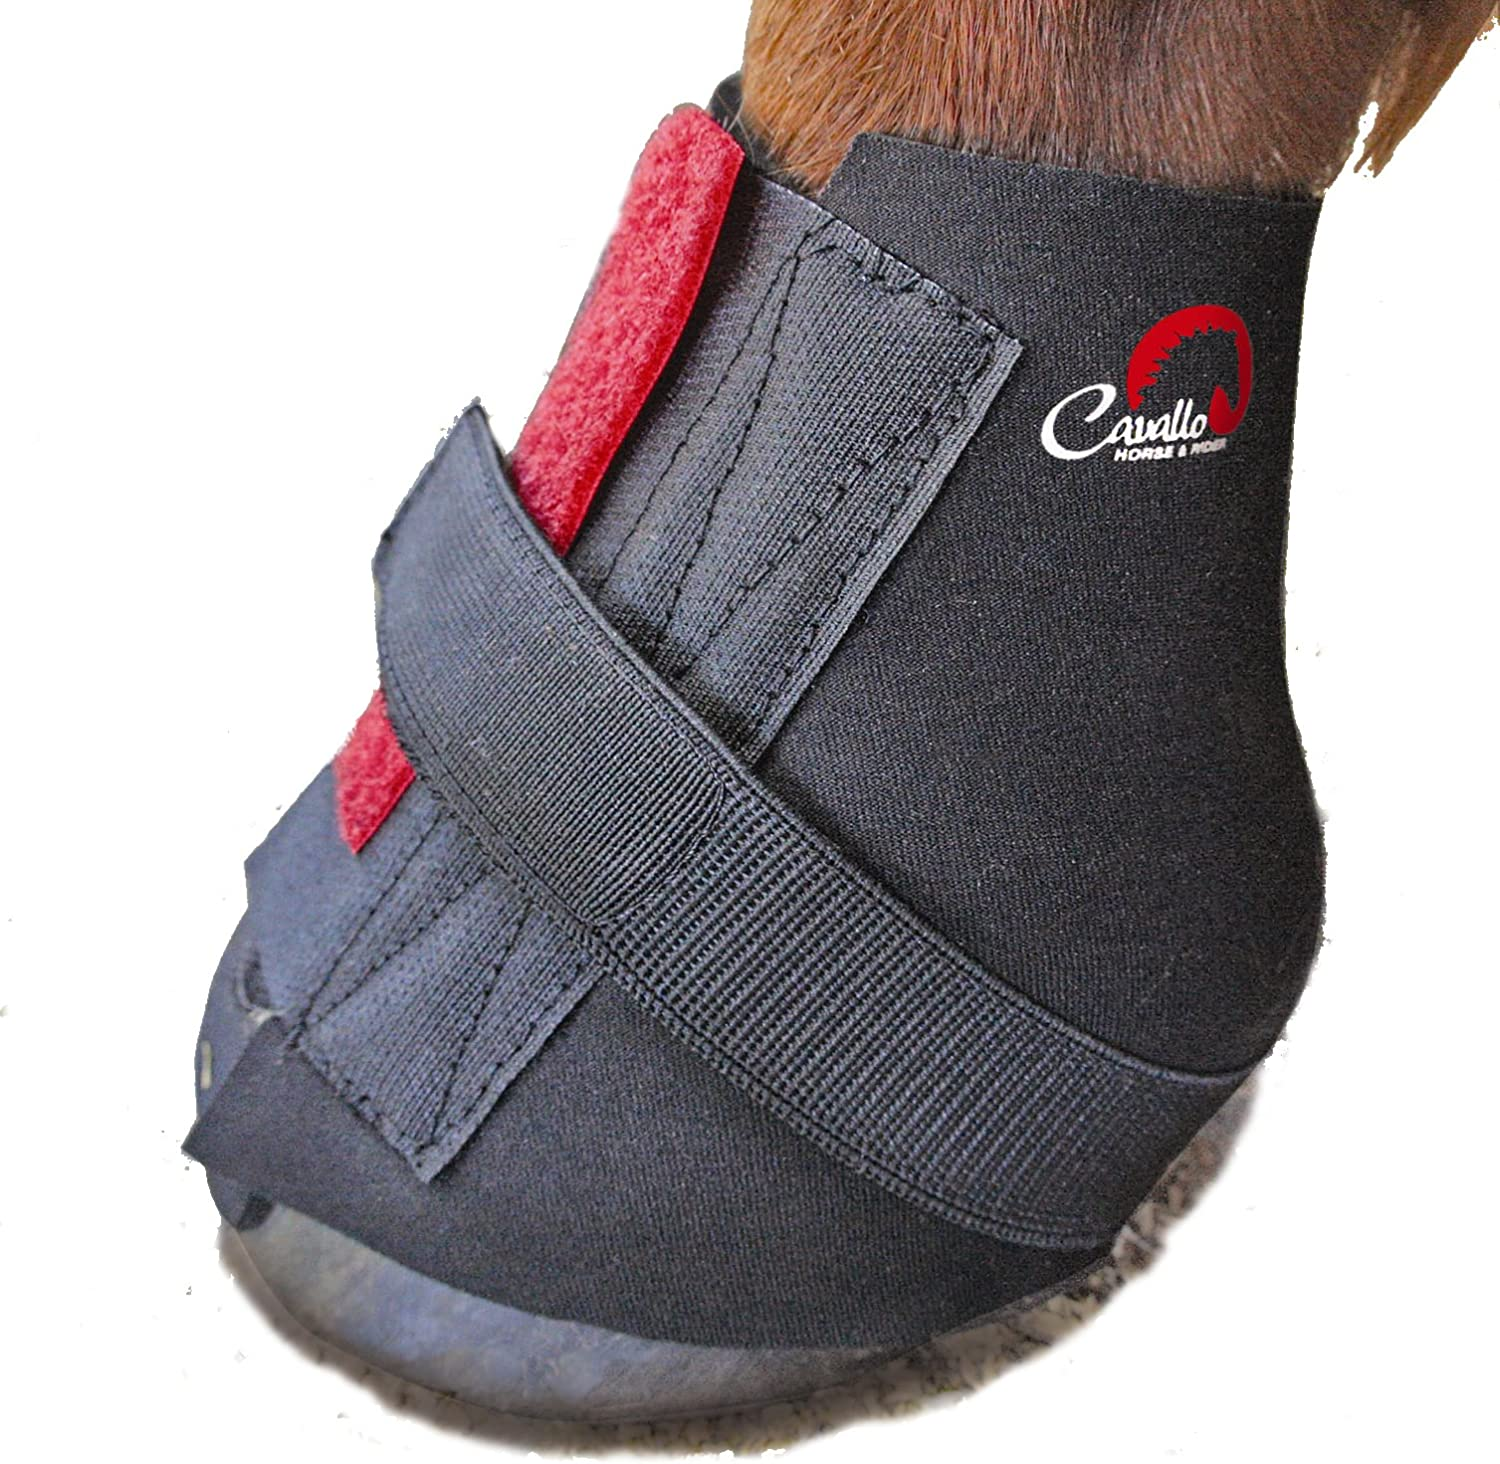 Cavallo Pastern Wrap for Horse Hoof Boot, Small, Black : Horse Hoof Care : Pet Supplies